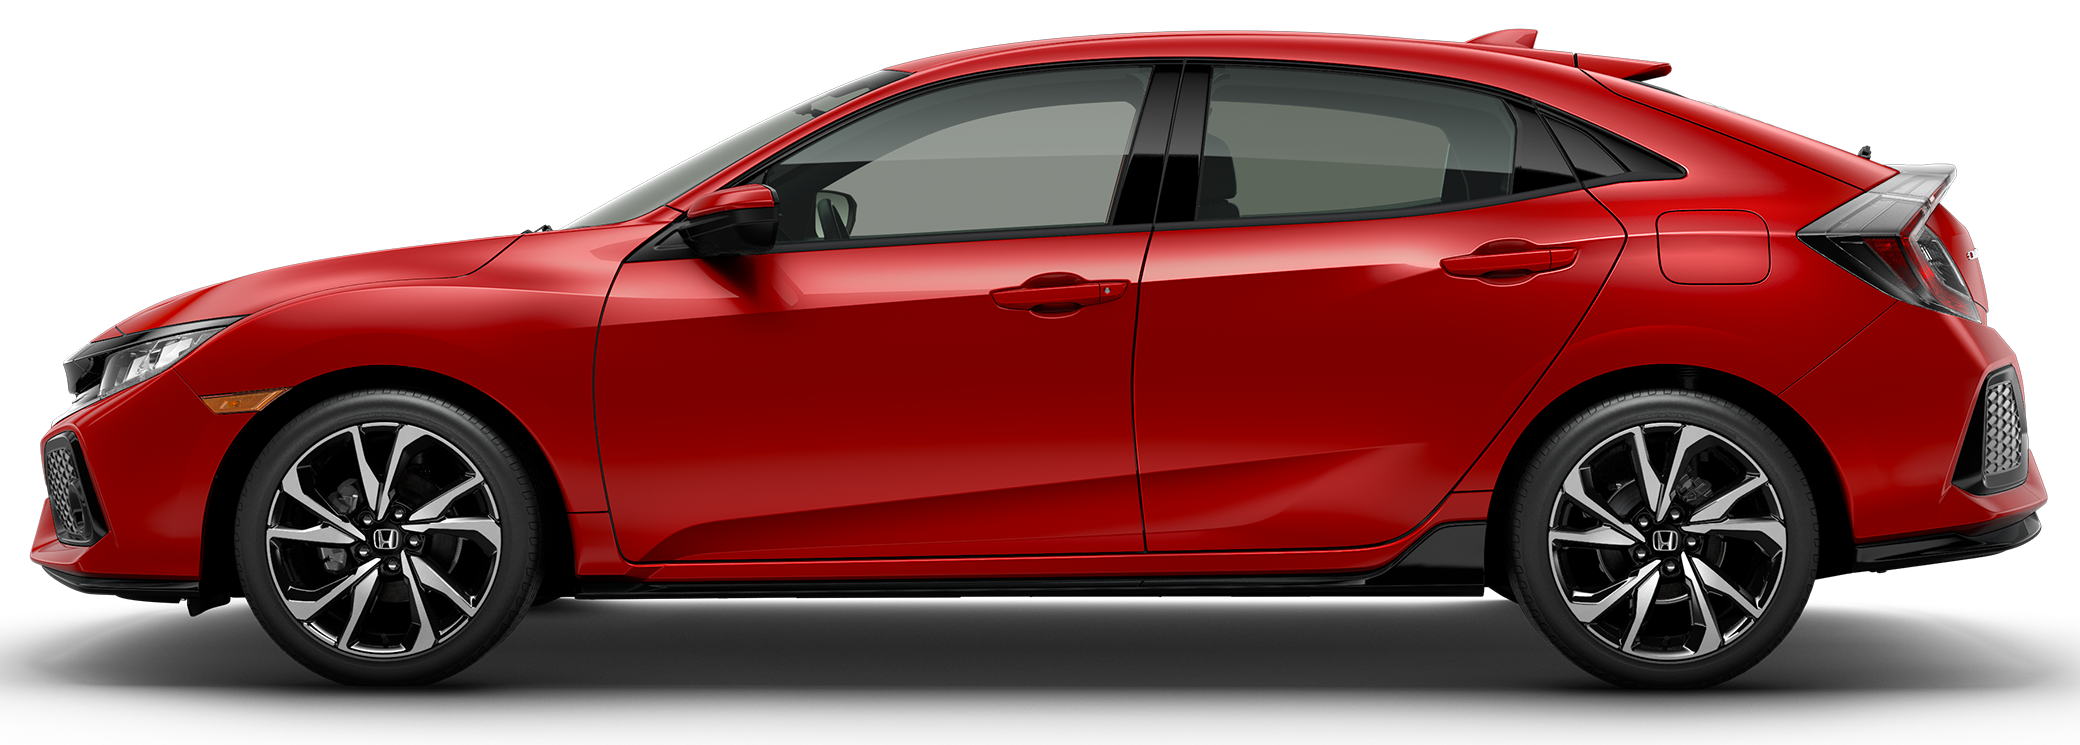 2019 Honda Civic Hatchback Deportivo